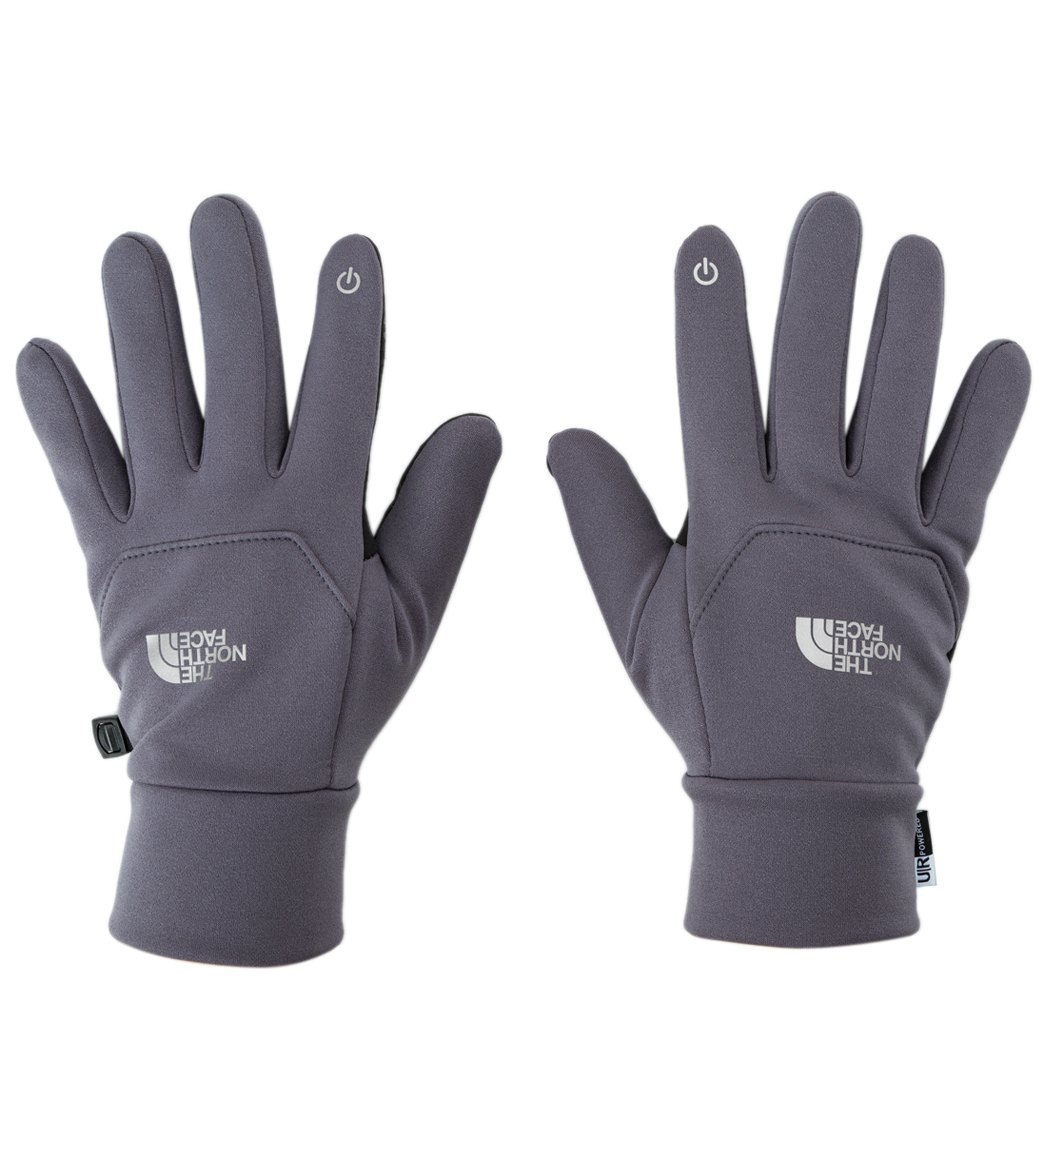 afb333b80 The North Face Men's Etip Running Glove